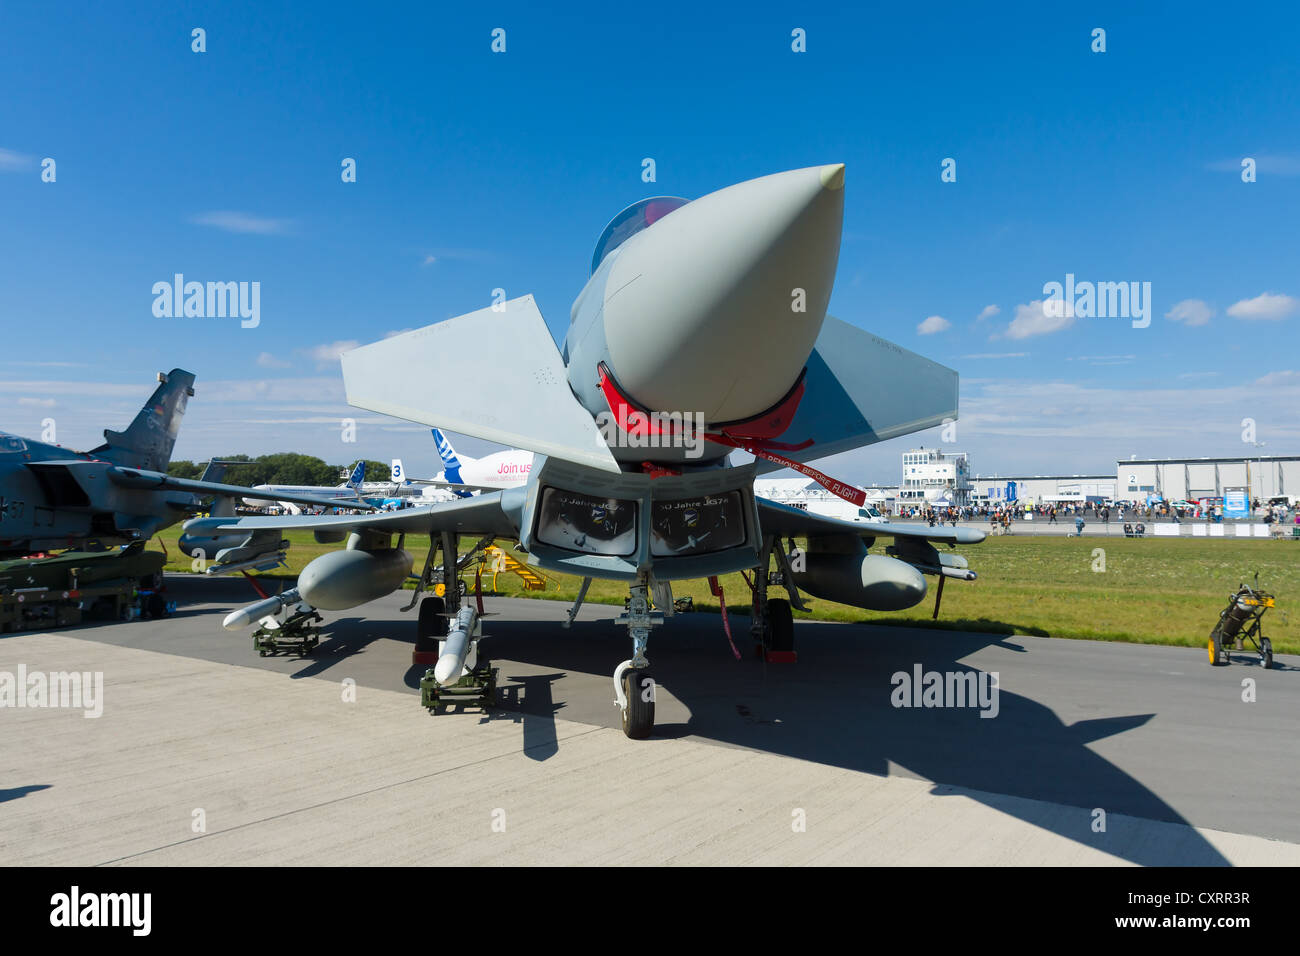 The Eurofighter Typhoon is a twin-engine, canard-delta wing, multirole fighter - Stock Image